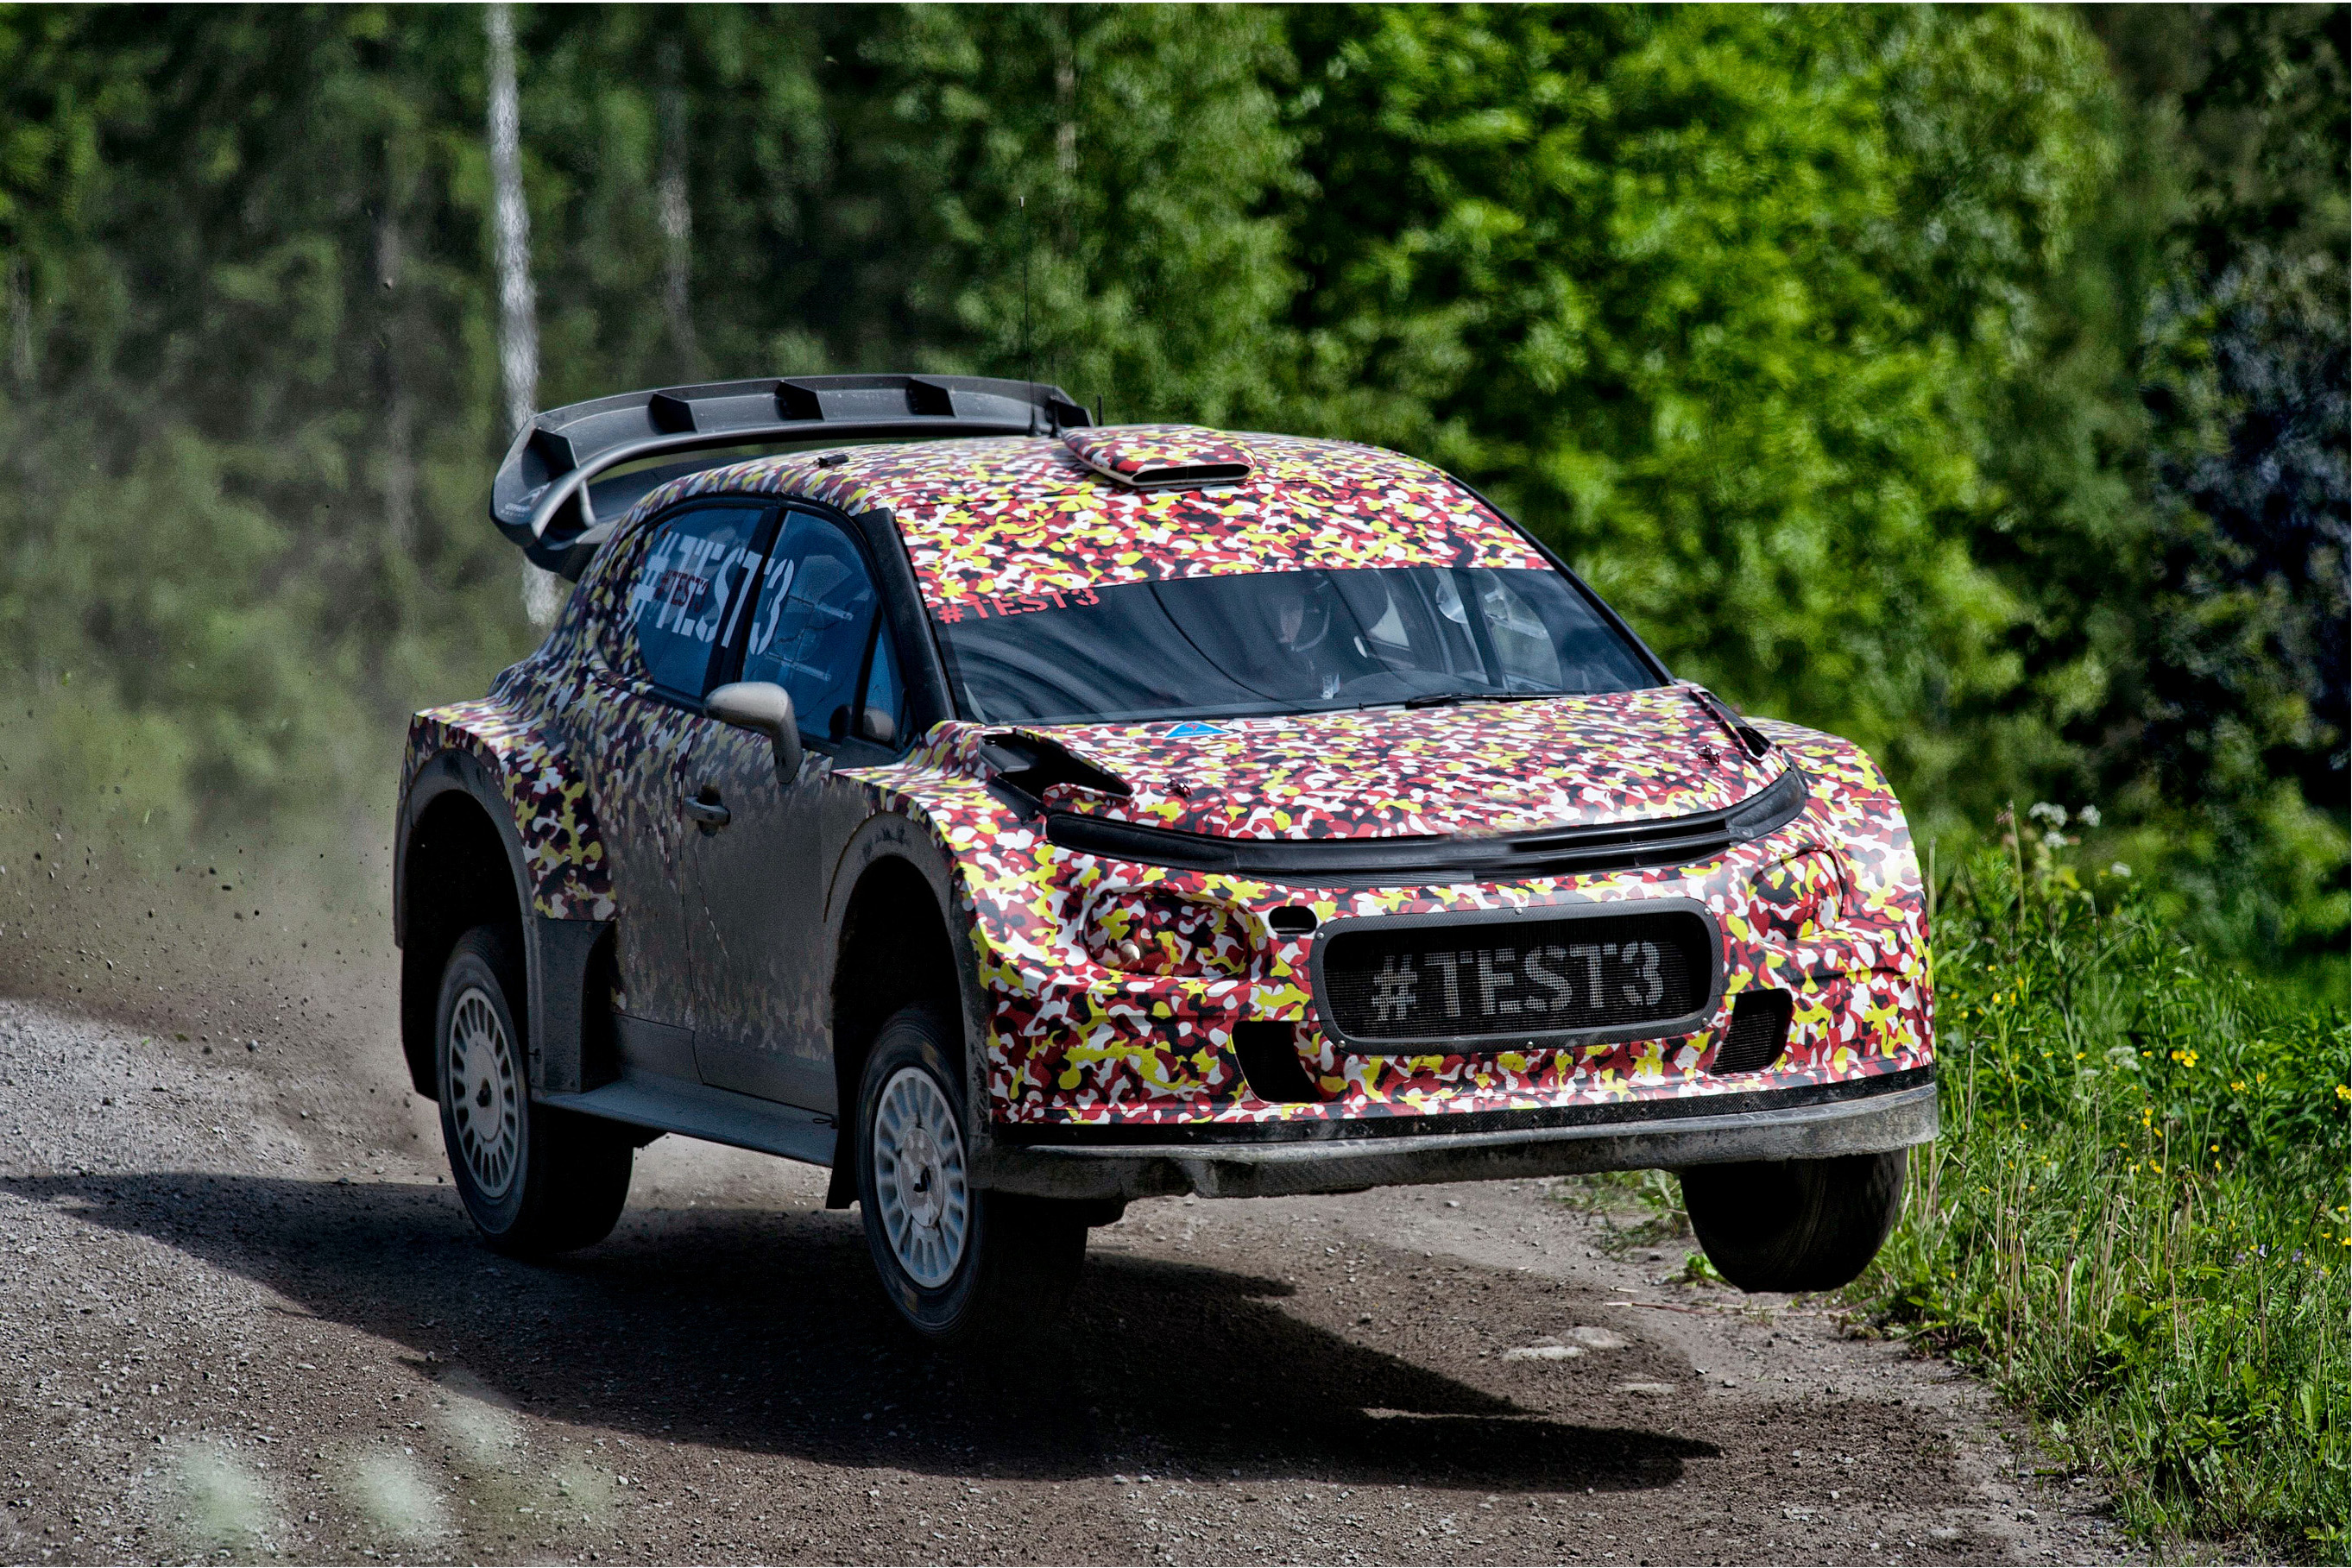 IRISHMEN TEST ALL NEW CITROEN RACING WORLD RALLY CAR IN FINLAND ...